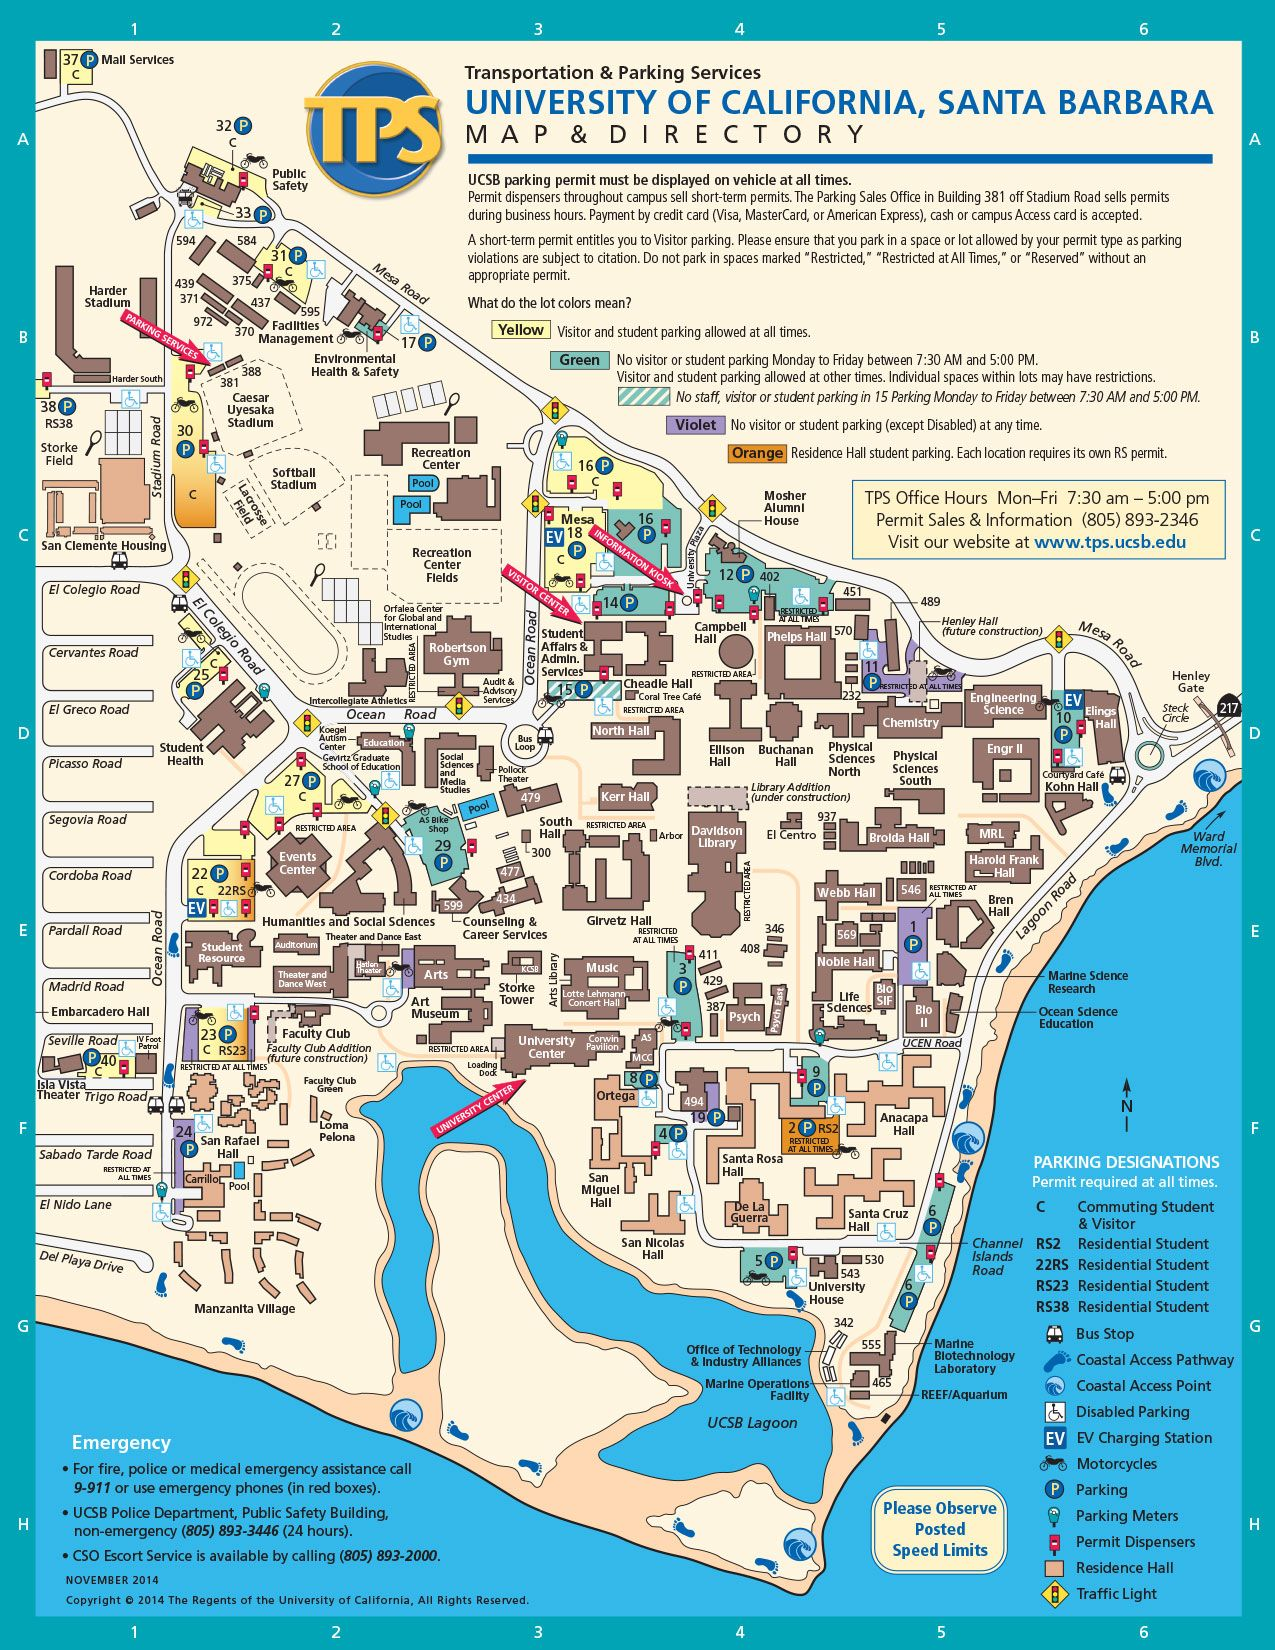 UCSB Campus Map | Santa Barbara Trip | Campus map, Santa Barbara